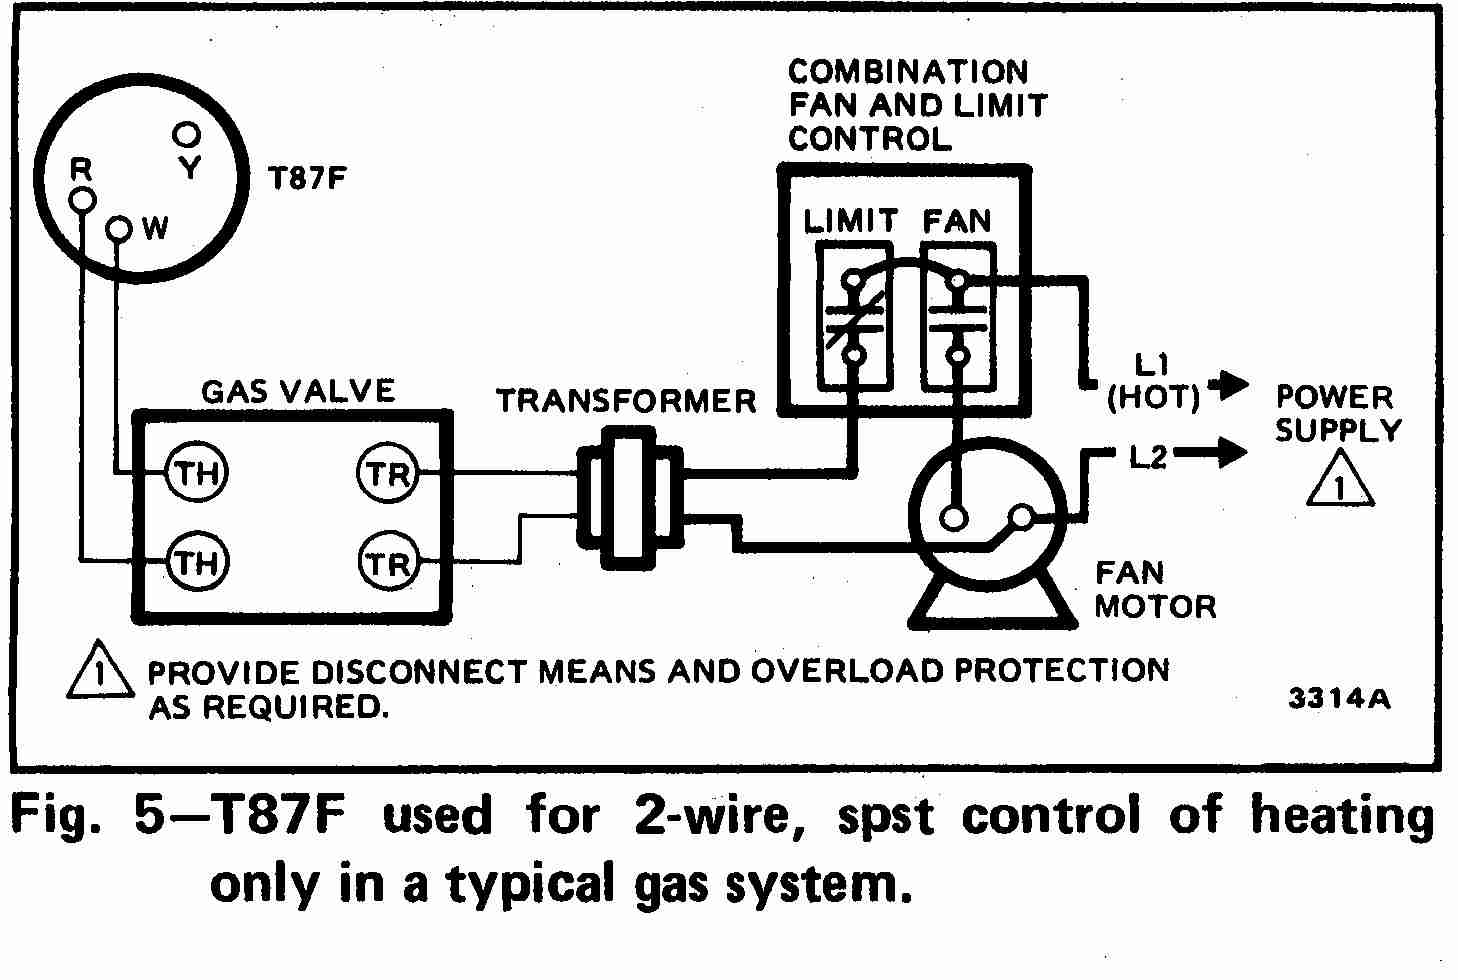 TT_T87F_0002_2Wg_DJF space heater wiring diagram s700 electric heater wire diagram Basic Outlet Wiring Diagrams at virtualis.co